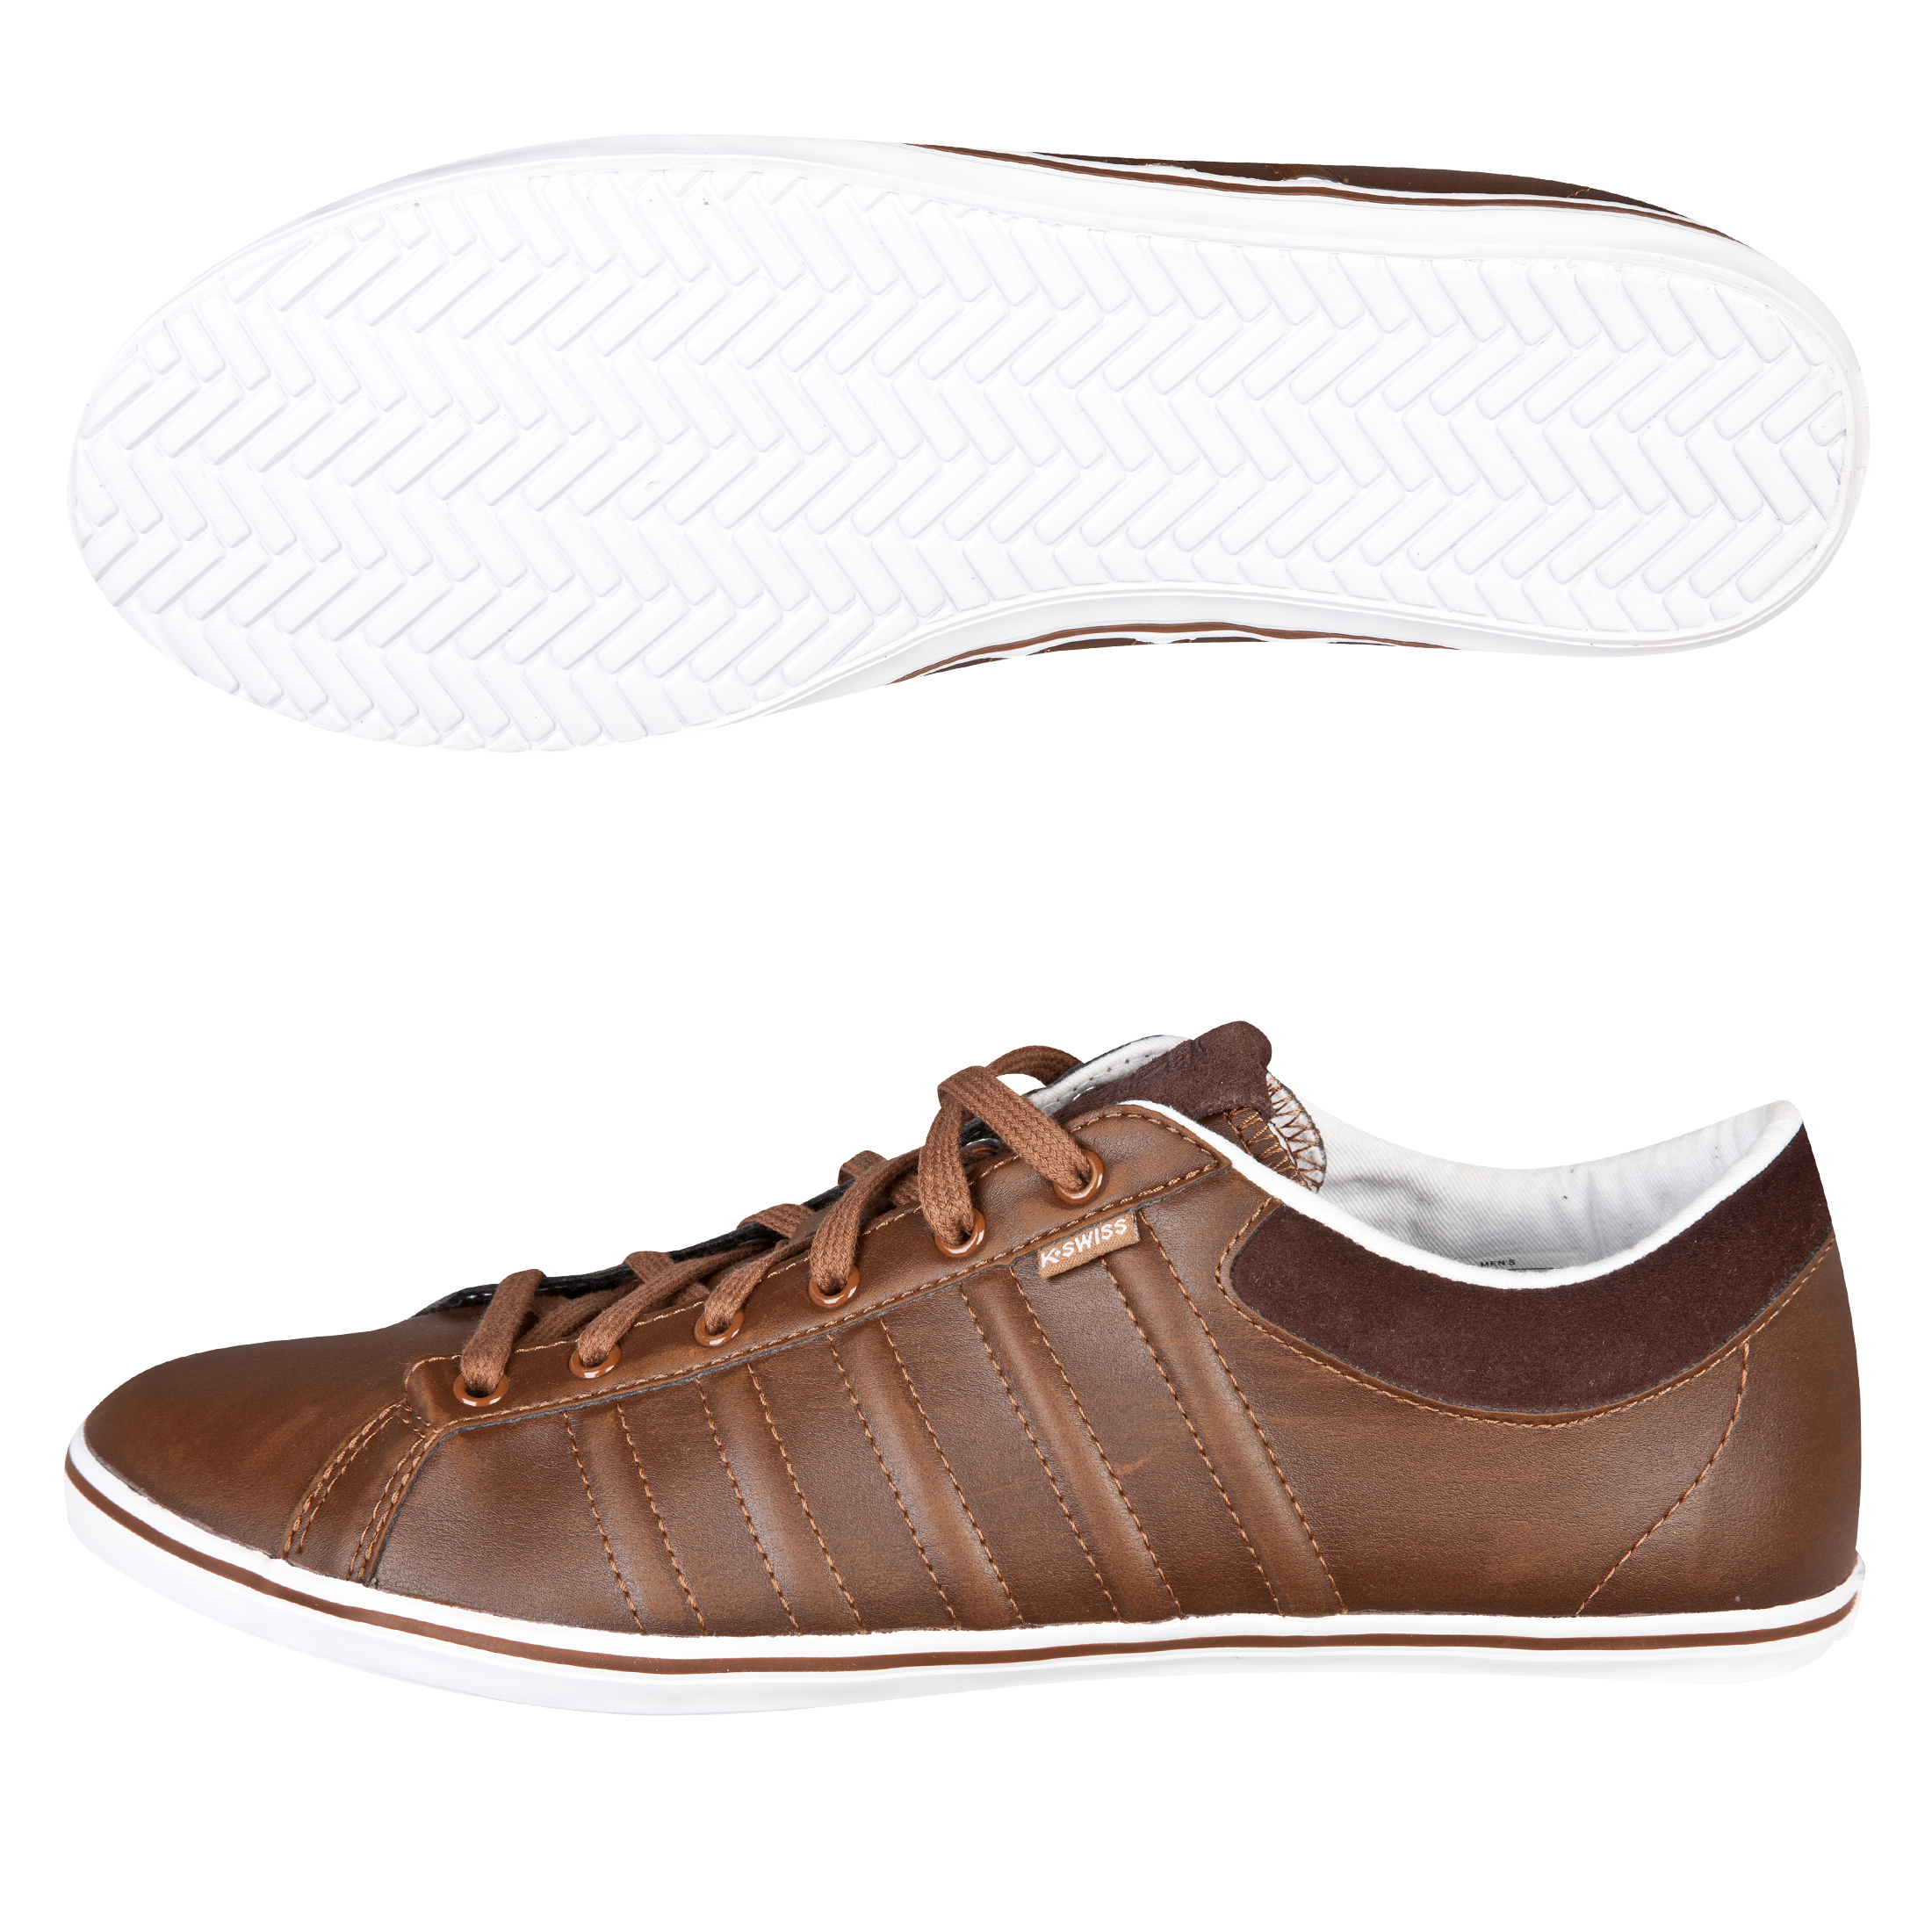 K-Swiss Hof IV Plimsol - Cowboy Brown/White